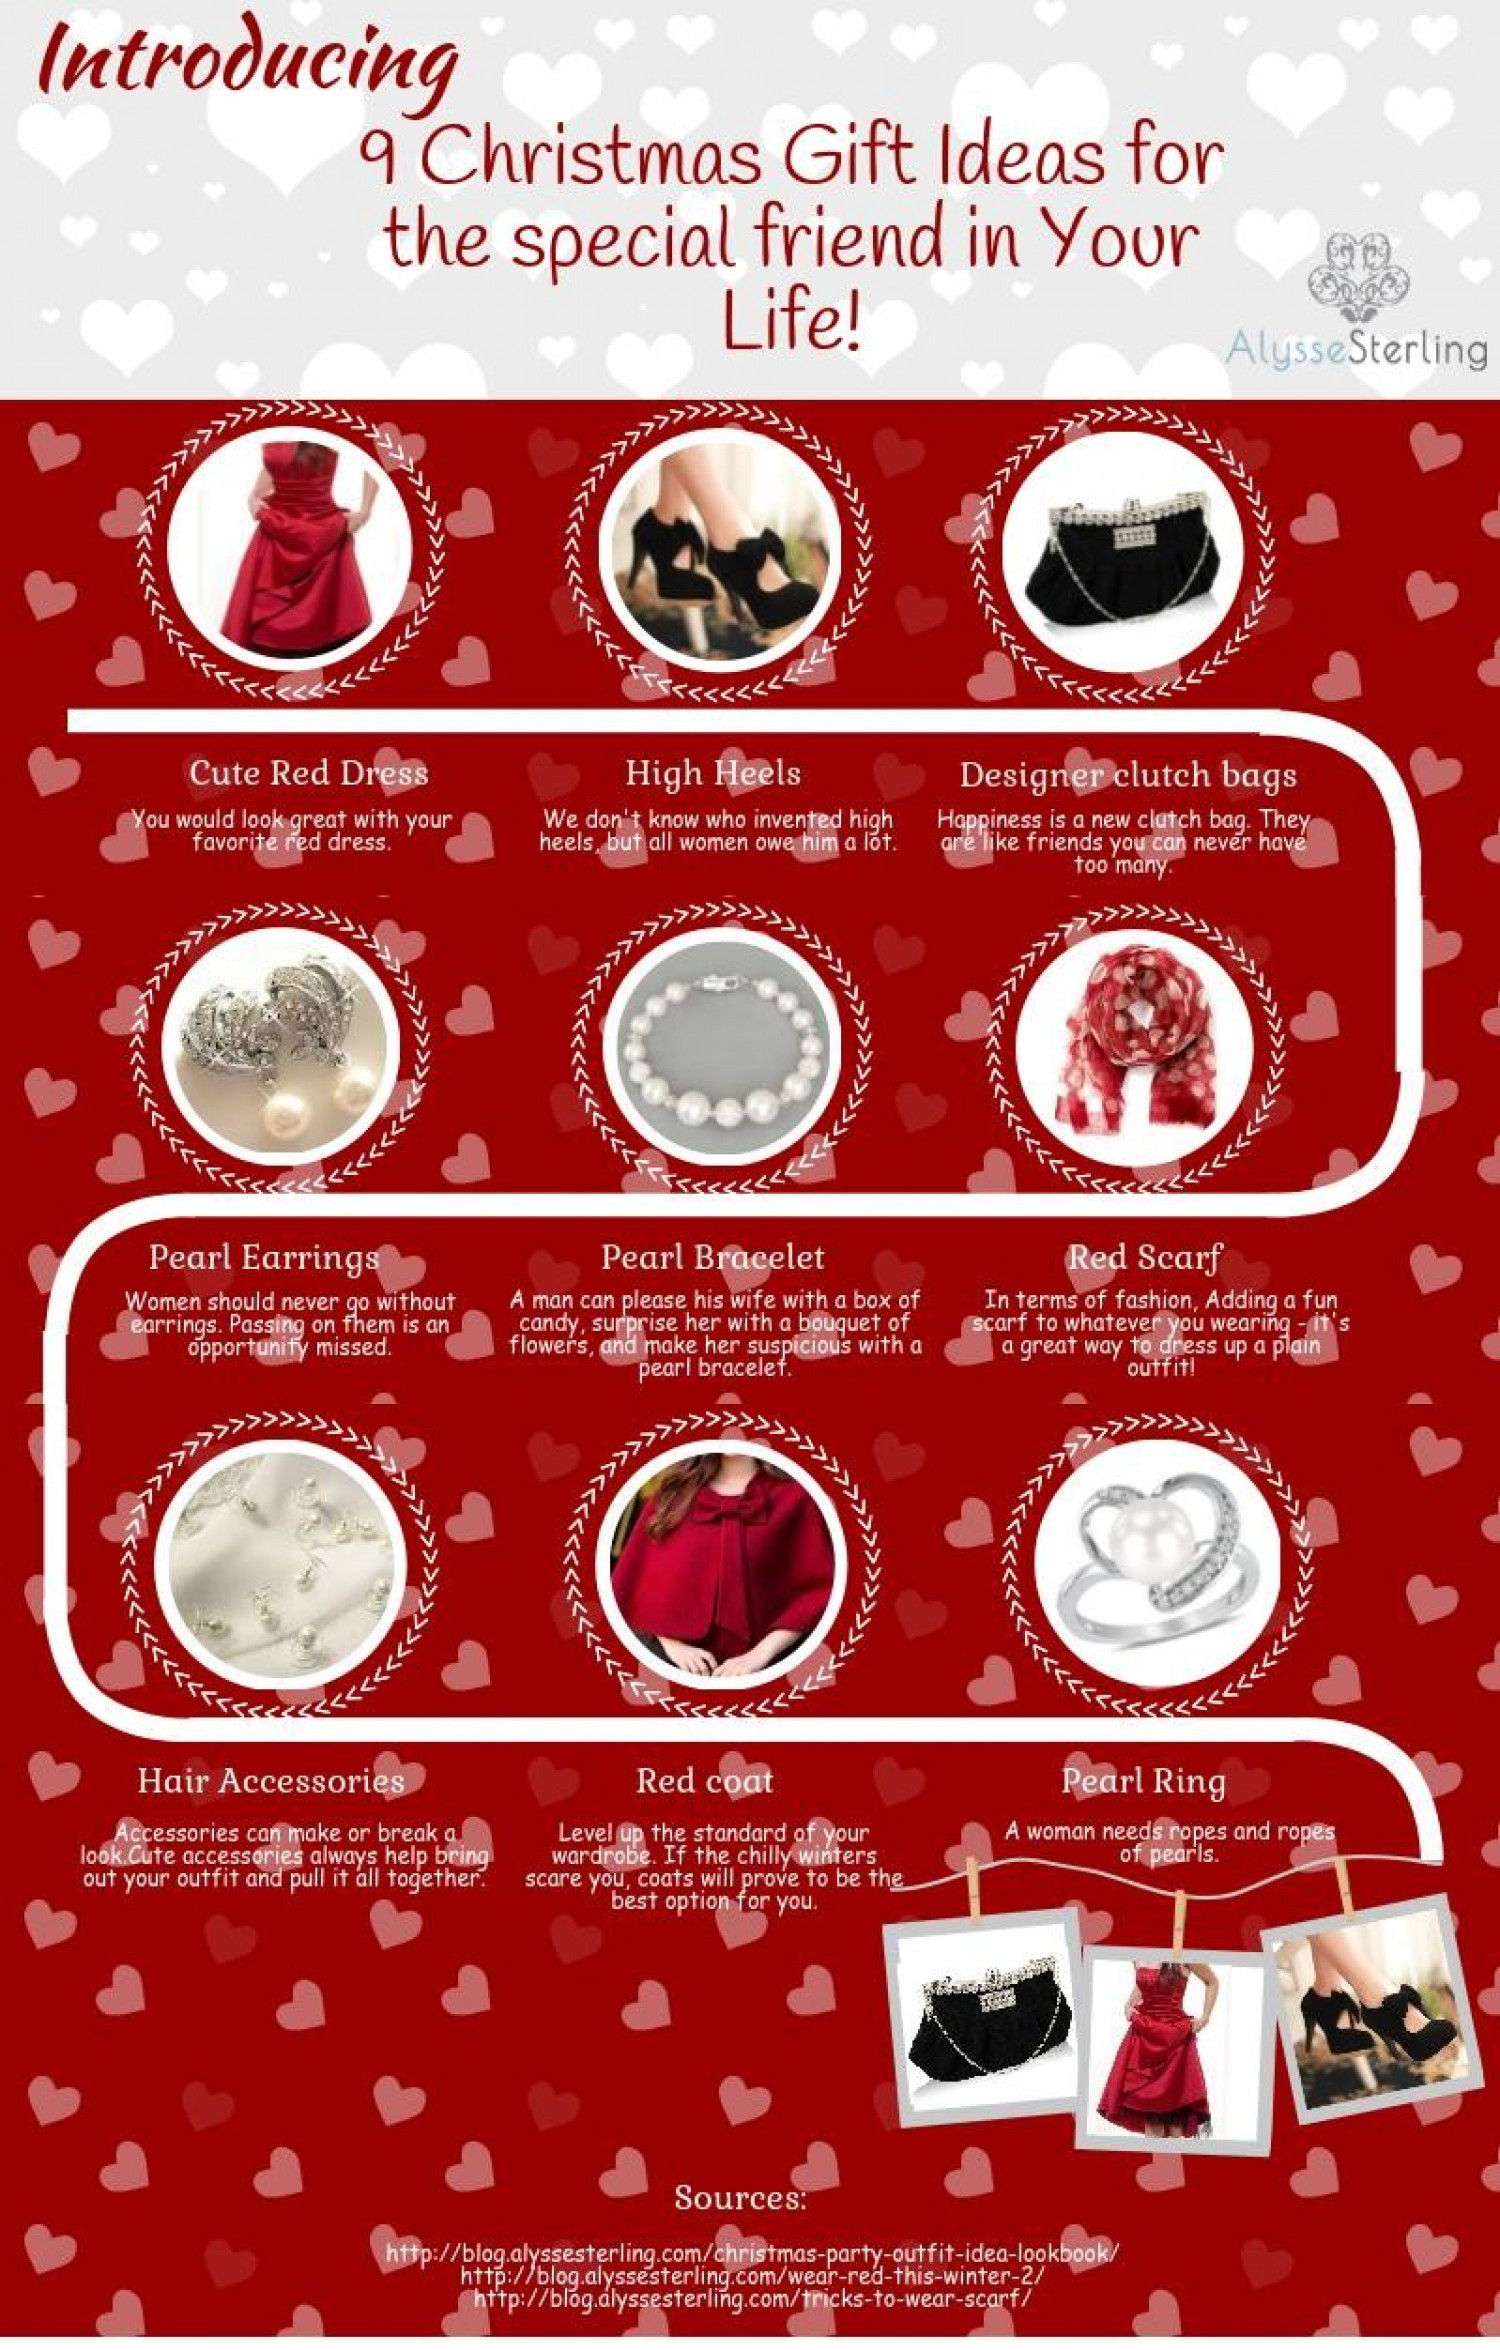 Gift Ideas for the special friend in Your Life! Infographic